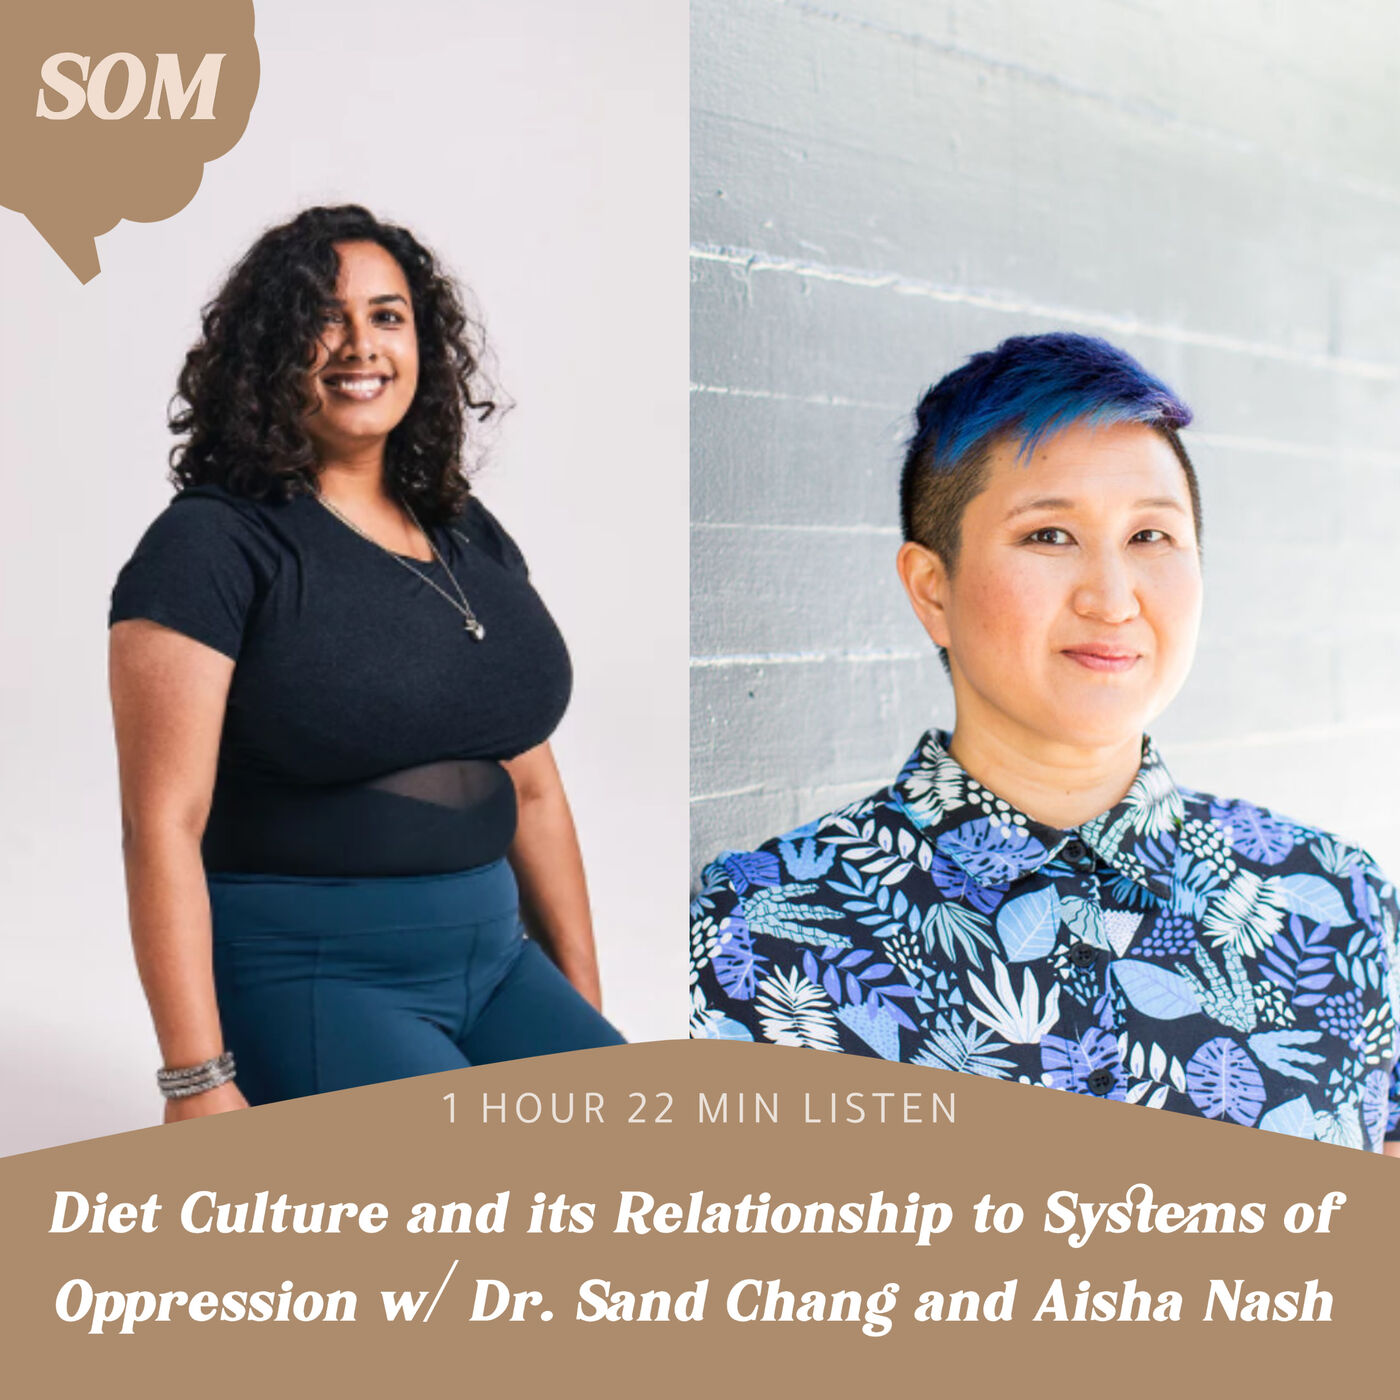 Diet Culture and its Relationship to Systems of Oppression w/ Dr. Sand Chang and Aisha Nash